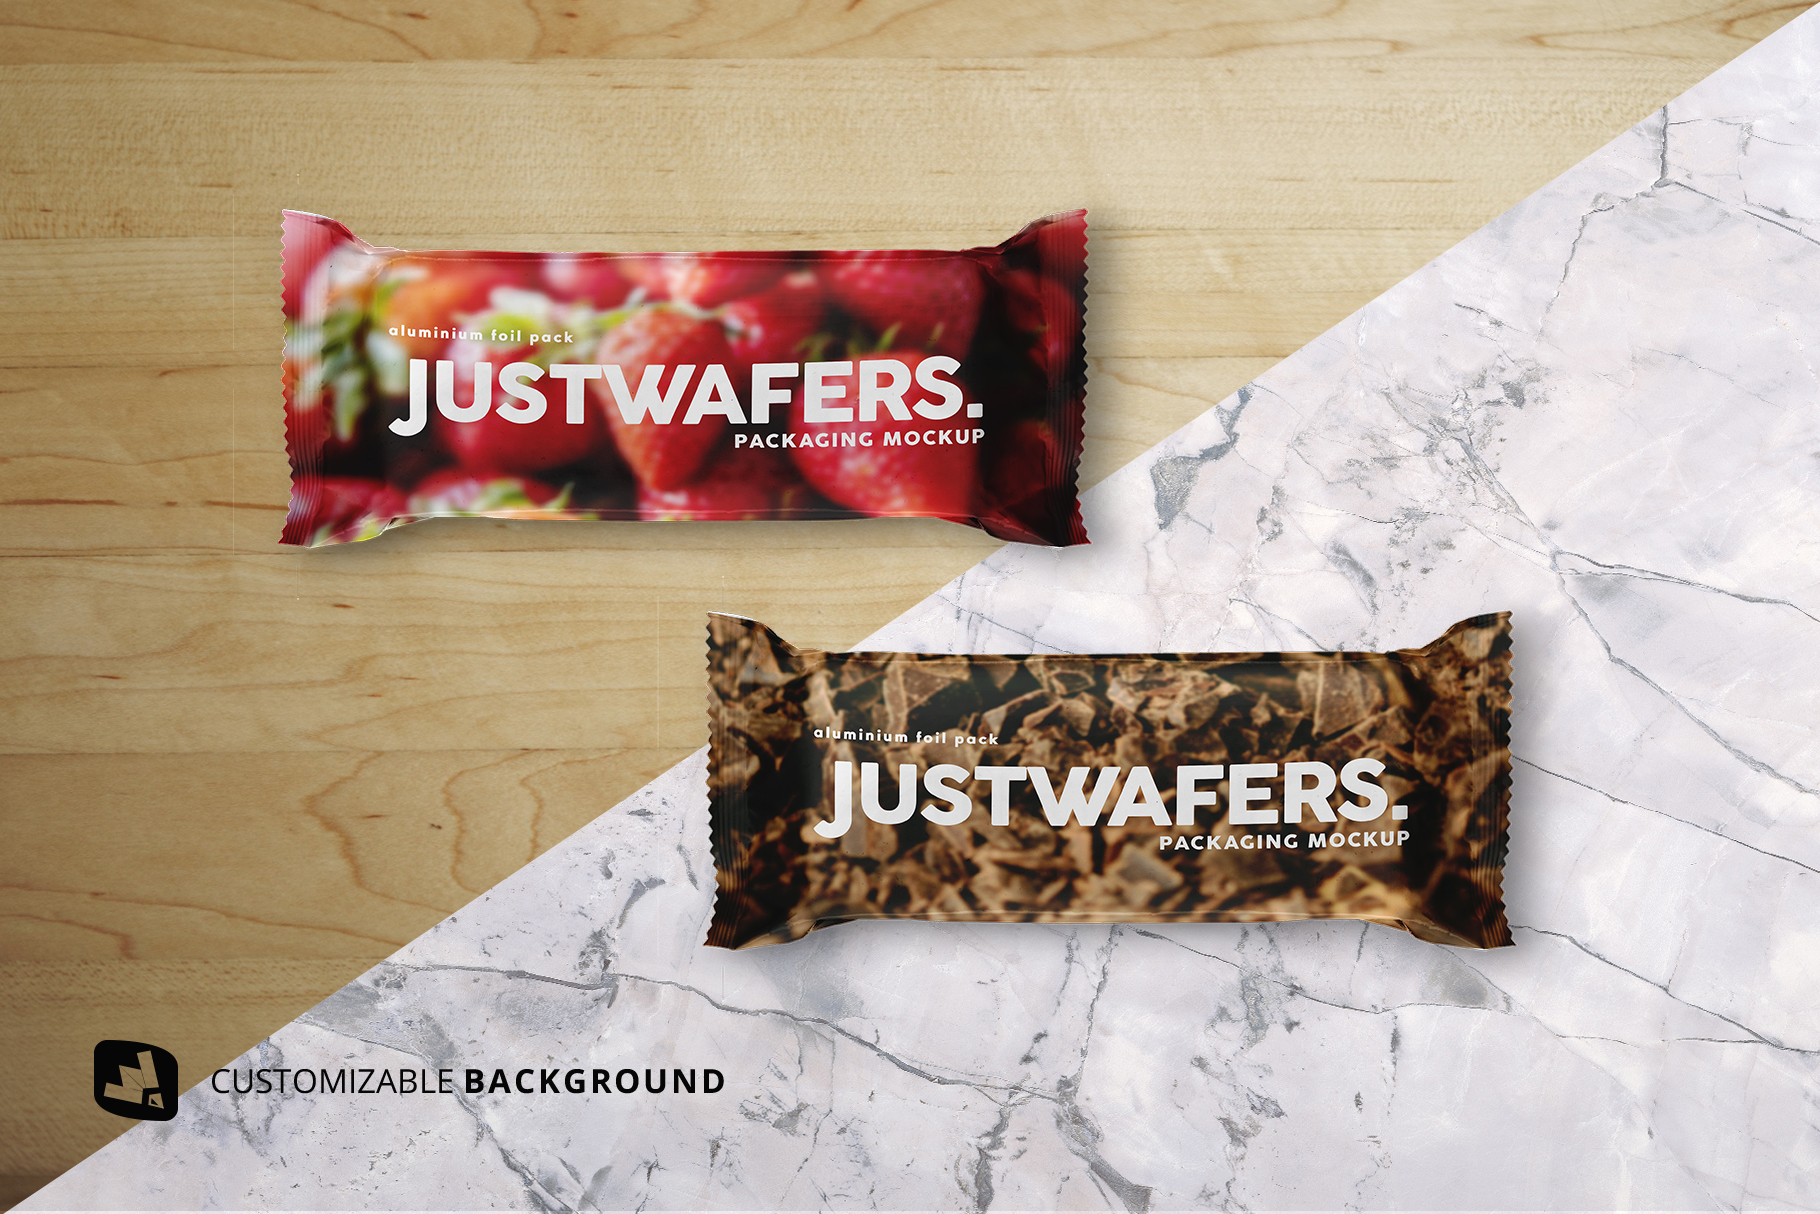 background options of the top view aluminium pack mockup